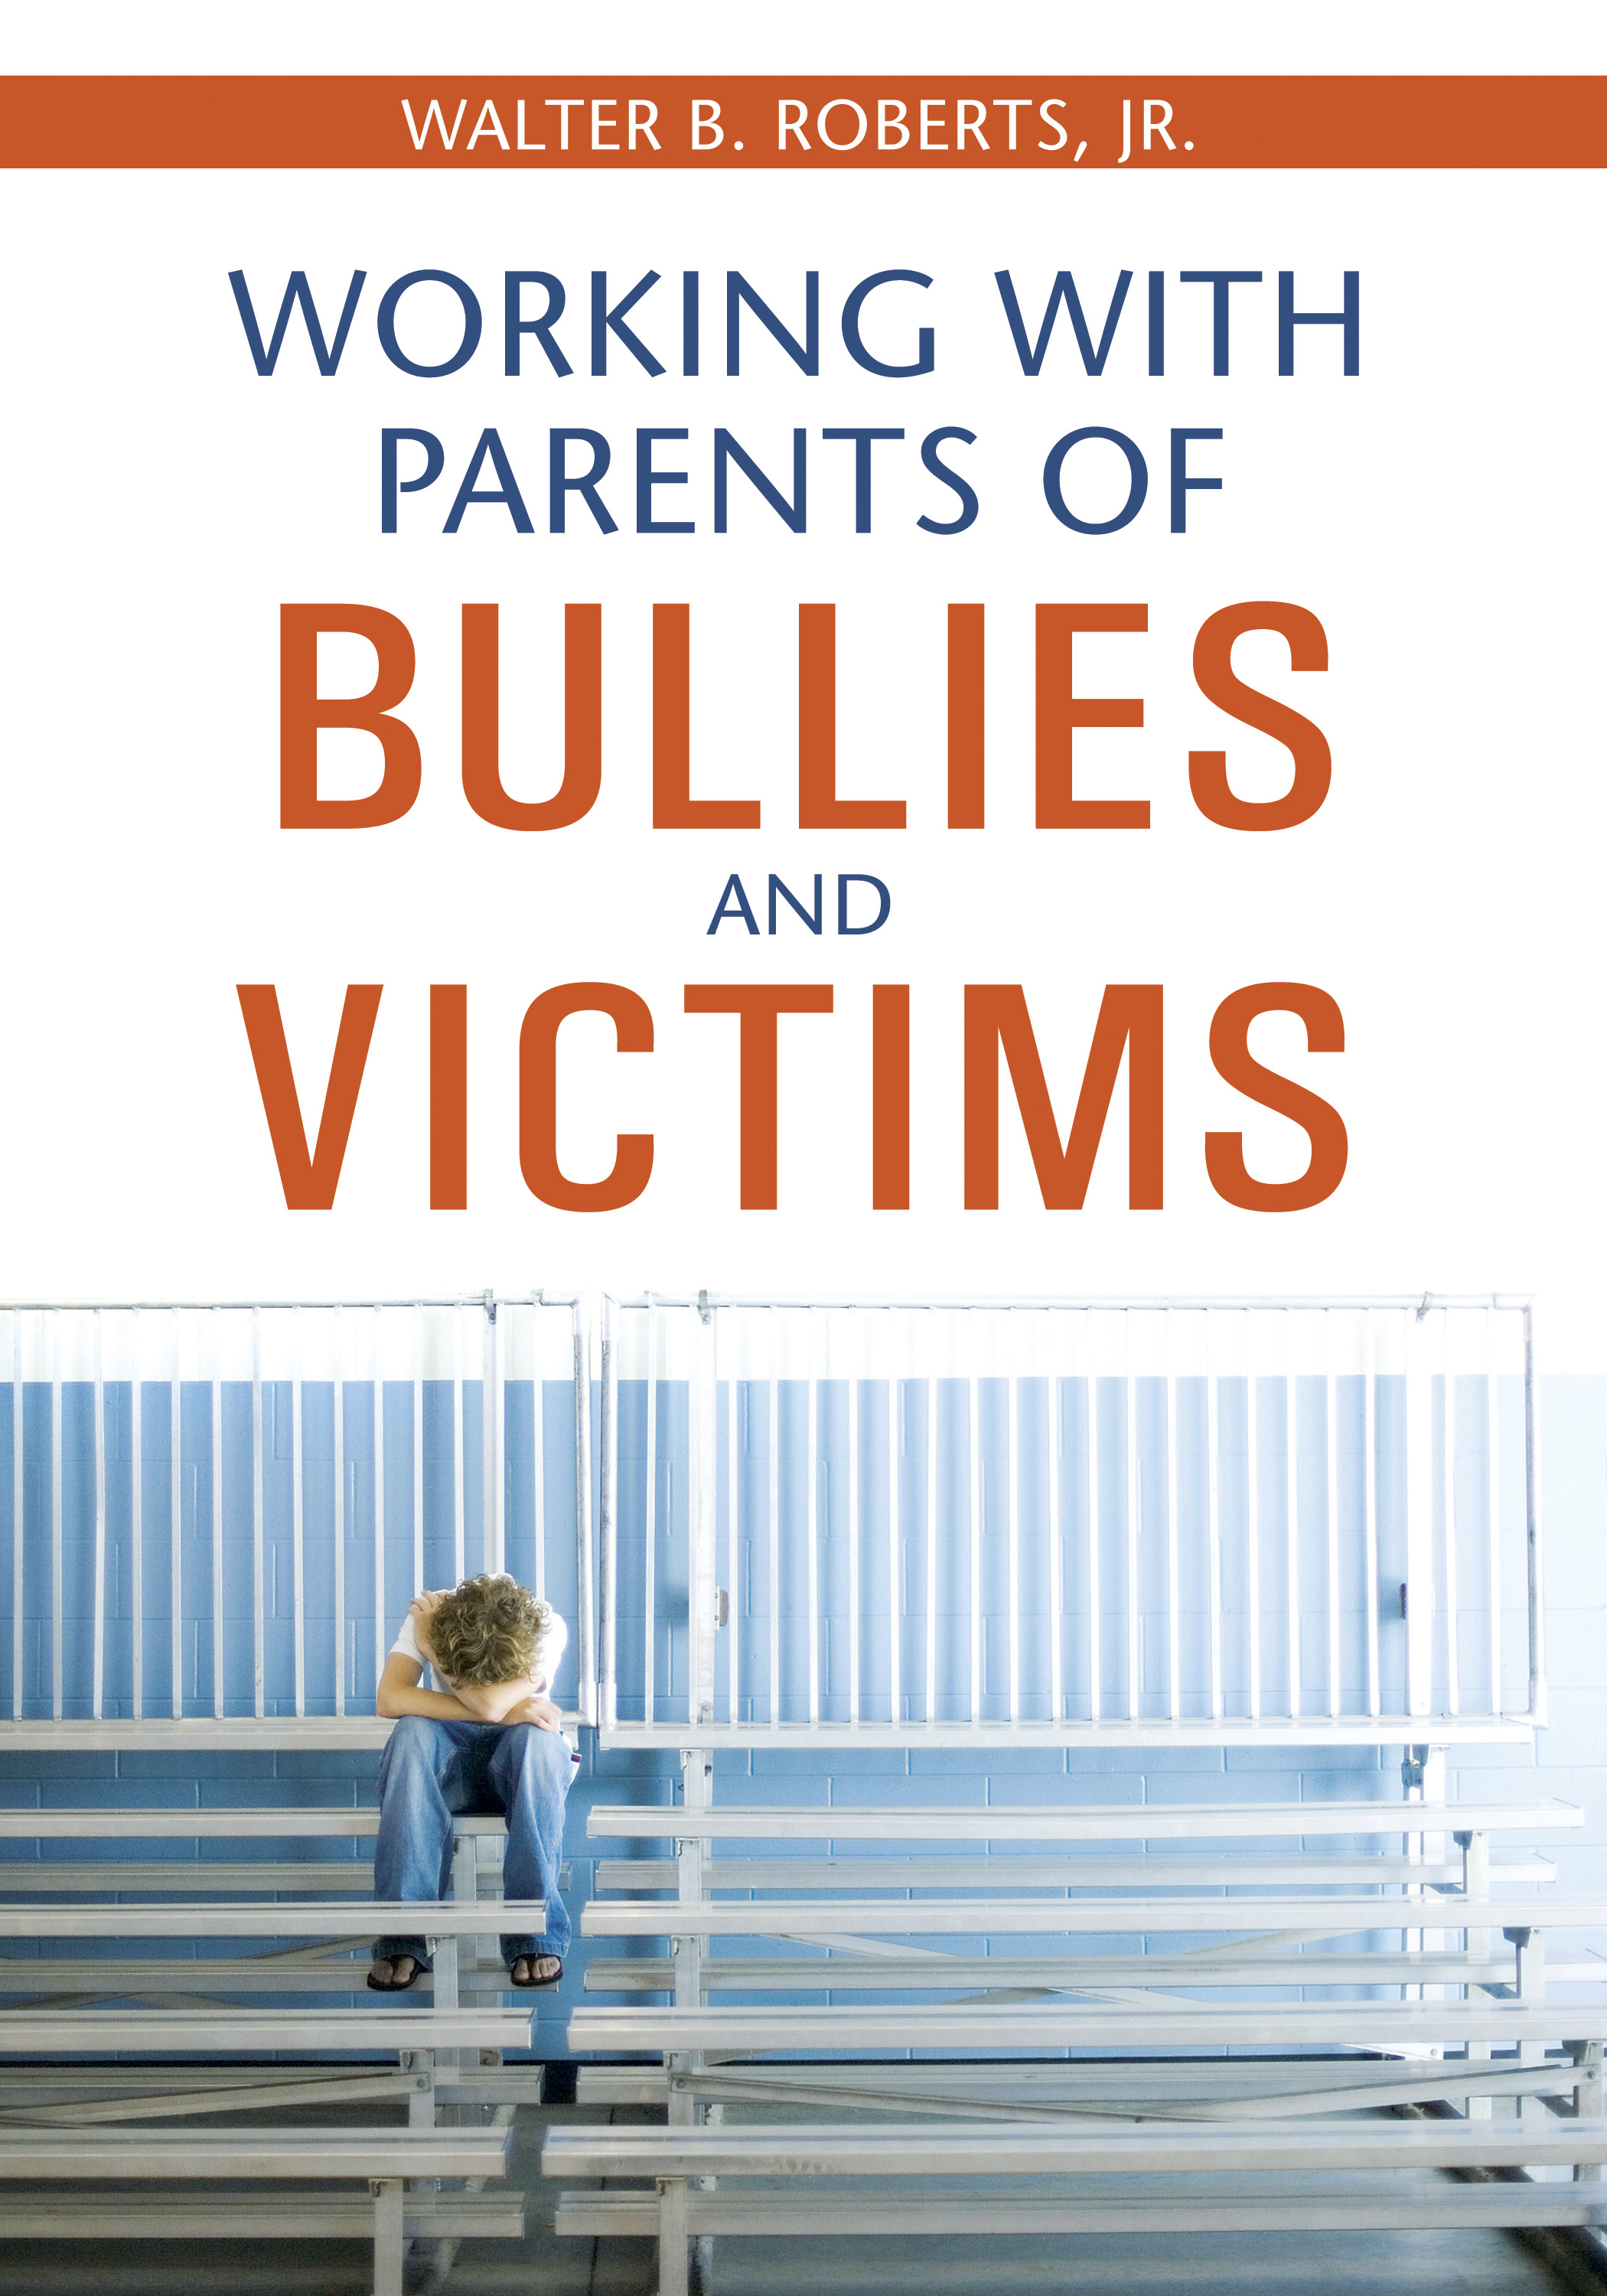 bullying victims on both sides essay